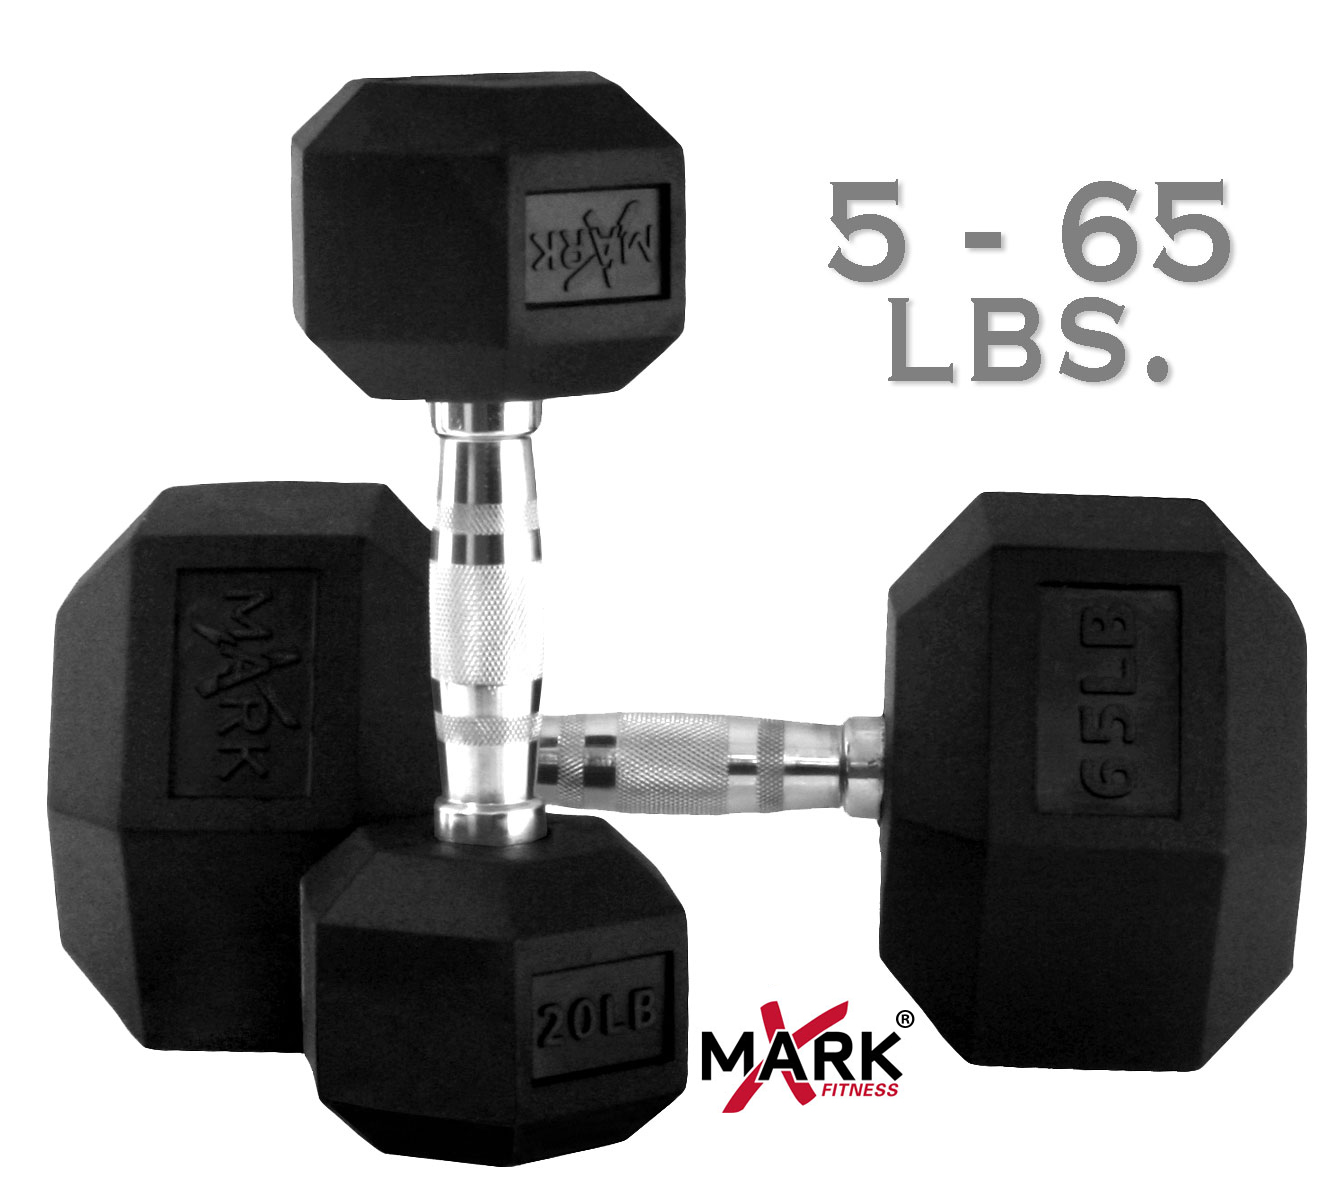 x mark fitness 5 lb to 65 lb rubber hex dumbbell set dumbbell 0 0 X Mark Fitness 5 lb to 65 lb Rubber Hex Dumbbell Set